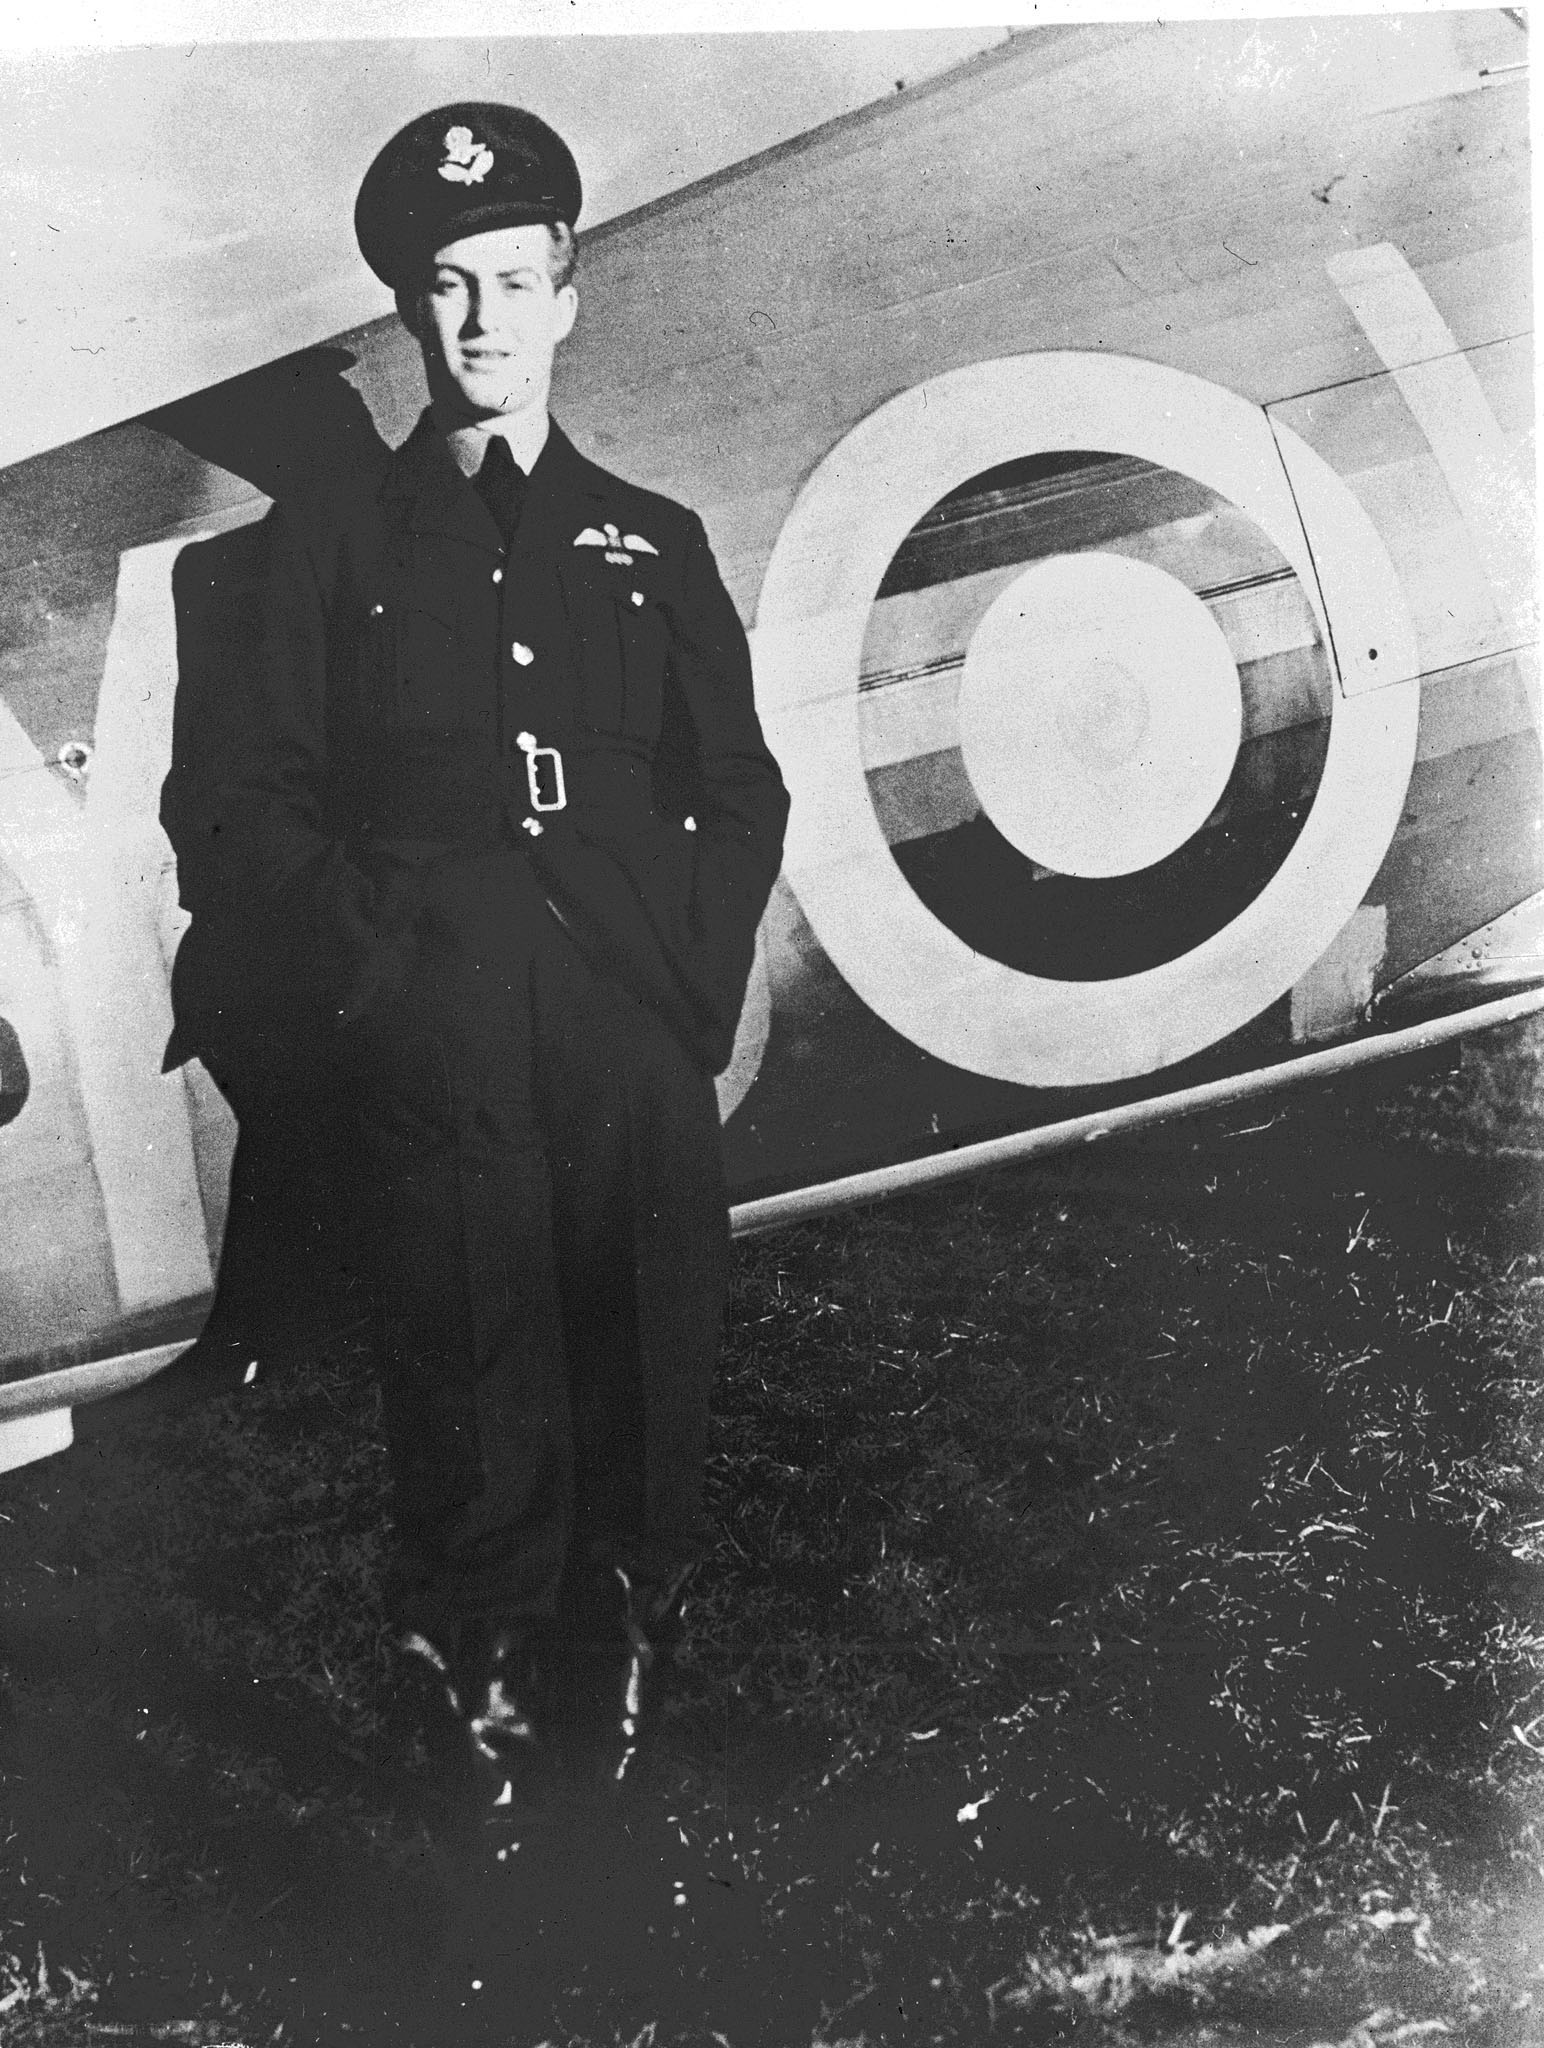 "Flying Officer Blair Dalzell ""Dal"" Russel stands beside a Hawker Hurricane on February 24, 1941, while serving with the RCAF's 401 Squadron. A Battle of Britain pilot, Russel was the first commander of 126 Wing, from July to October 1943 and then again from July 1944 to January 1945. Between those two postings, he accepted a demotion so he could command 442 Squadron. PHOTO: DND Archives, PL-3093"